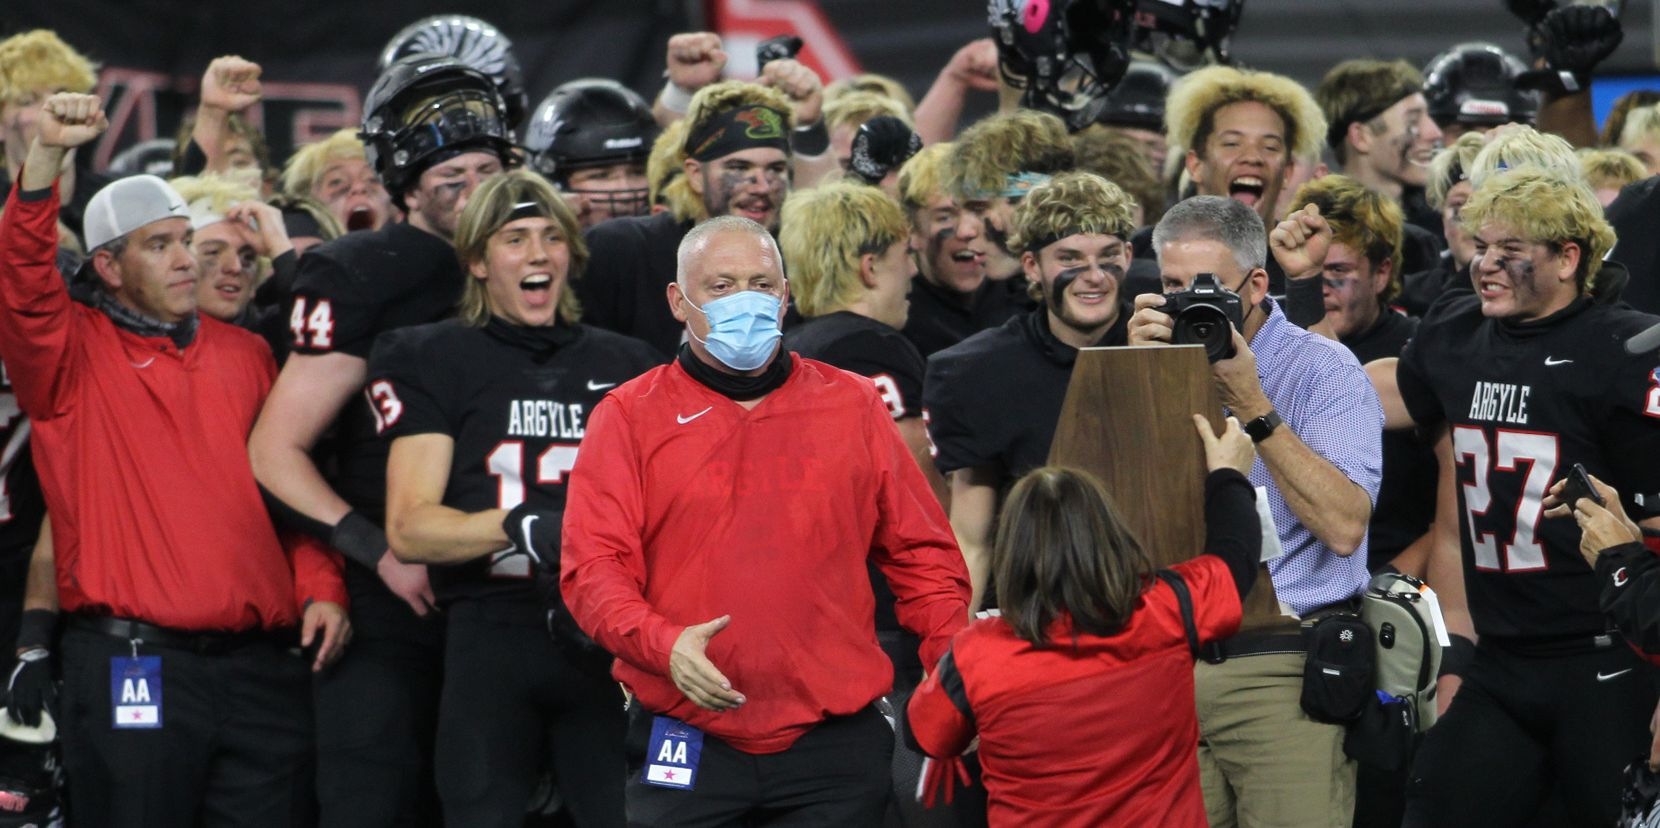 Argyle head coach Todd Rodgers steps up to accept the state championship trophy as his players react following their 49-21 victory over Lindale. The two teams played their Class 4A Division l state championship football game at AT&T Stadium in Arlington on December 18, 2020.